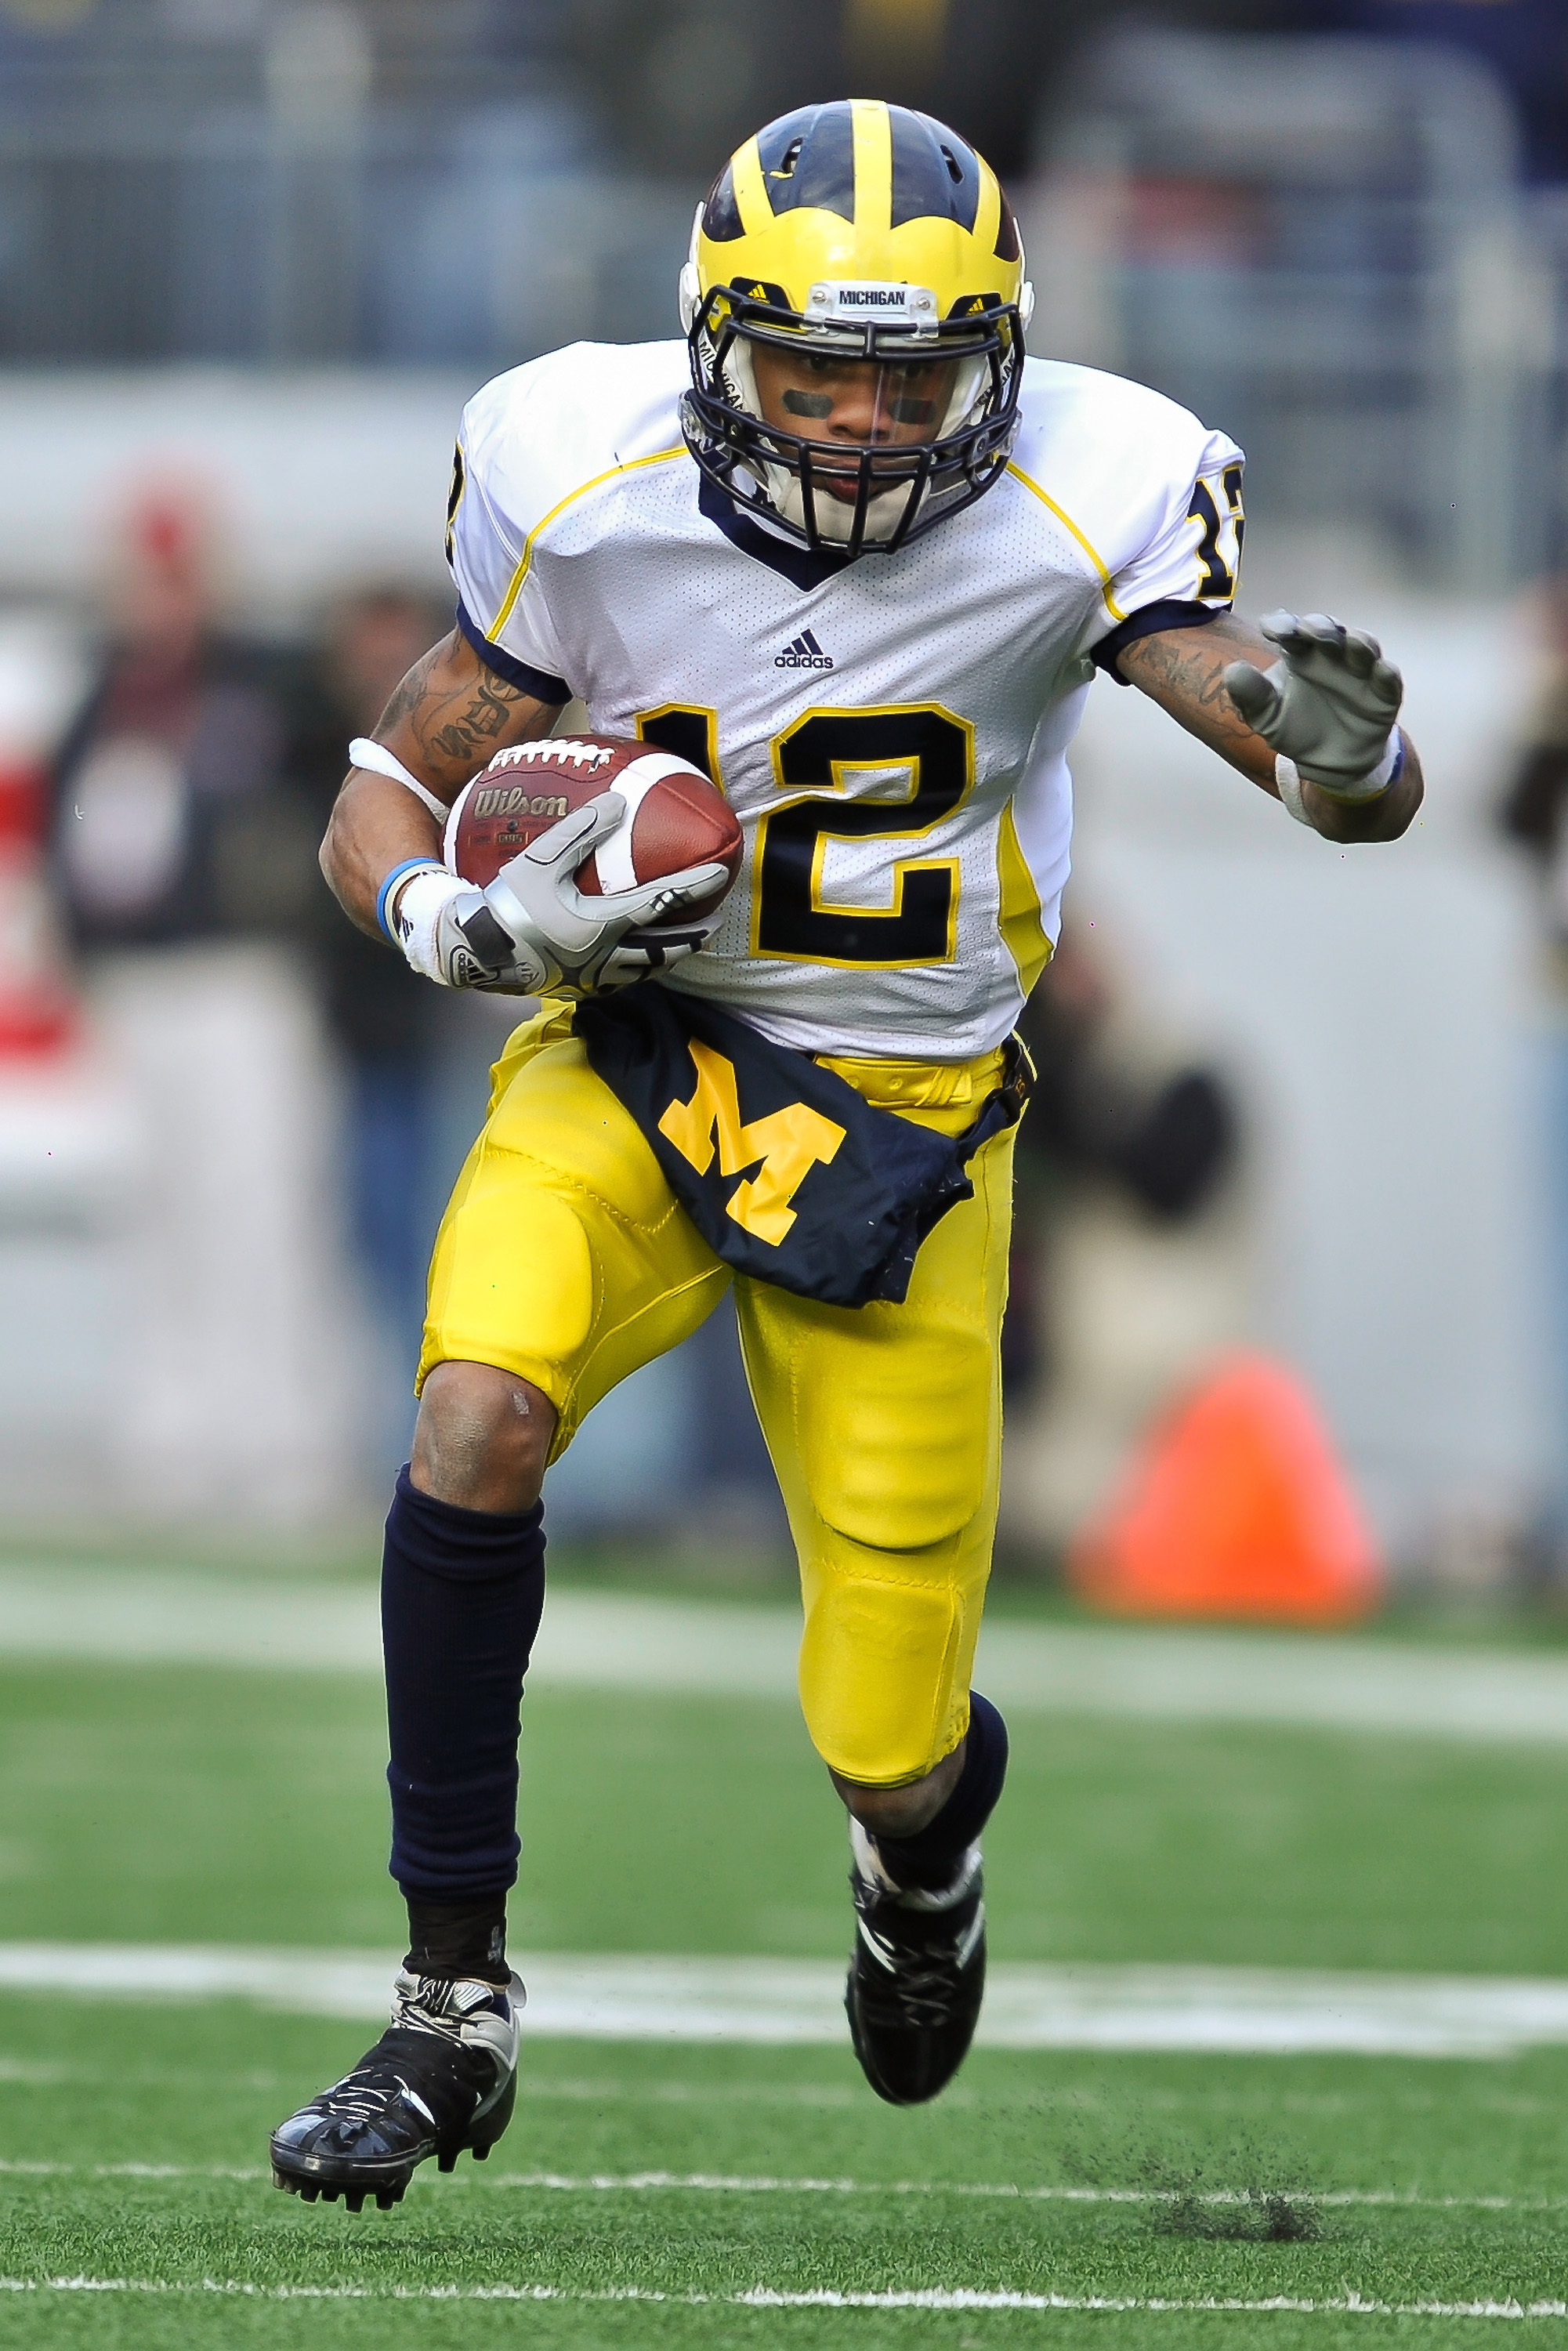 COLUMBUS, OH - NOVEMBER 27:  Roy Roundtree #12 of the Michigan Wolverines runs with the ball against the Ohio State Buckeyes at Ohio Stadium on November 27, 2010 in Columbus, Ohio.  (Photo by Jamie Sabau/Getty Images)